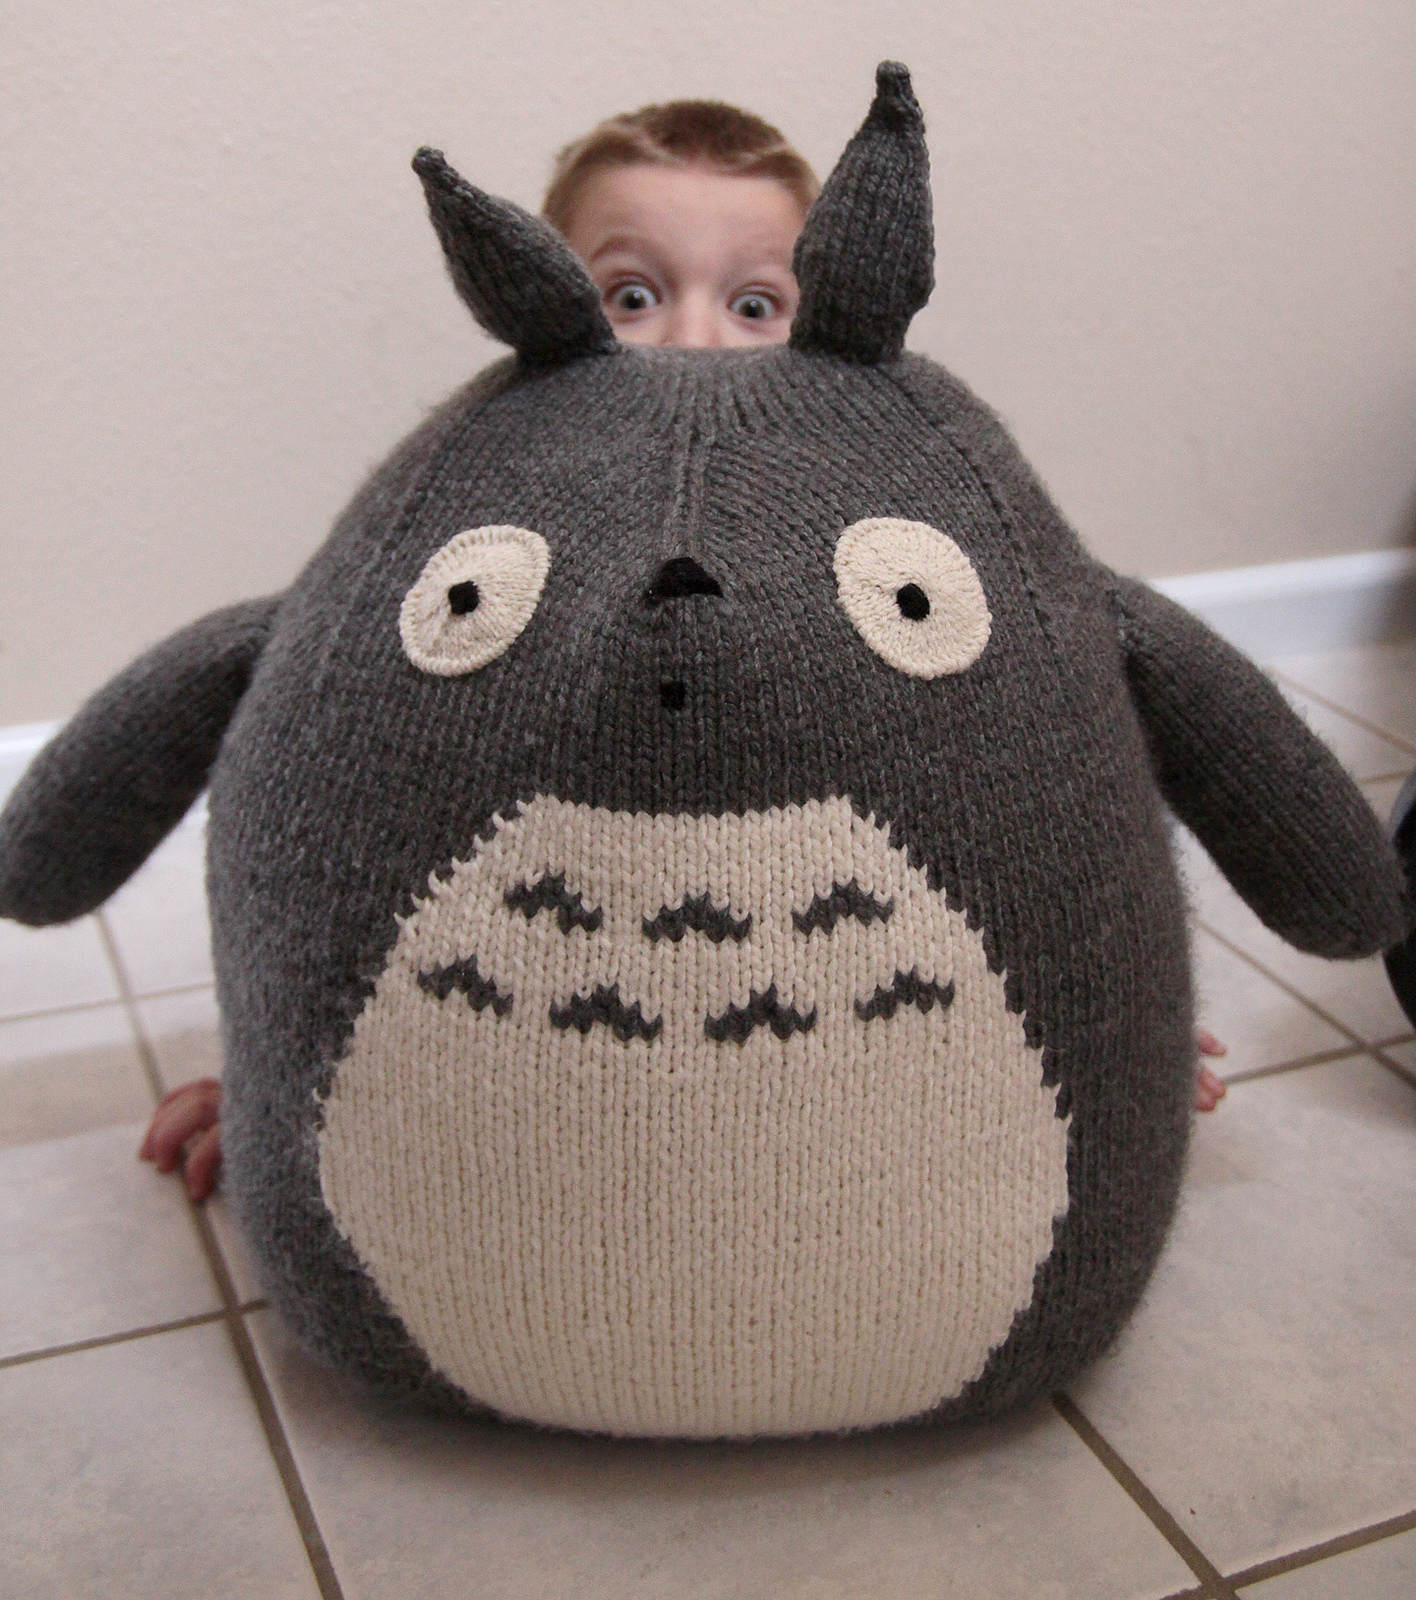 Knitting Patterns For Baby Toys 9 Totoro Knitting Pattern The Funky Stitch